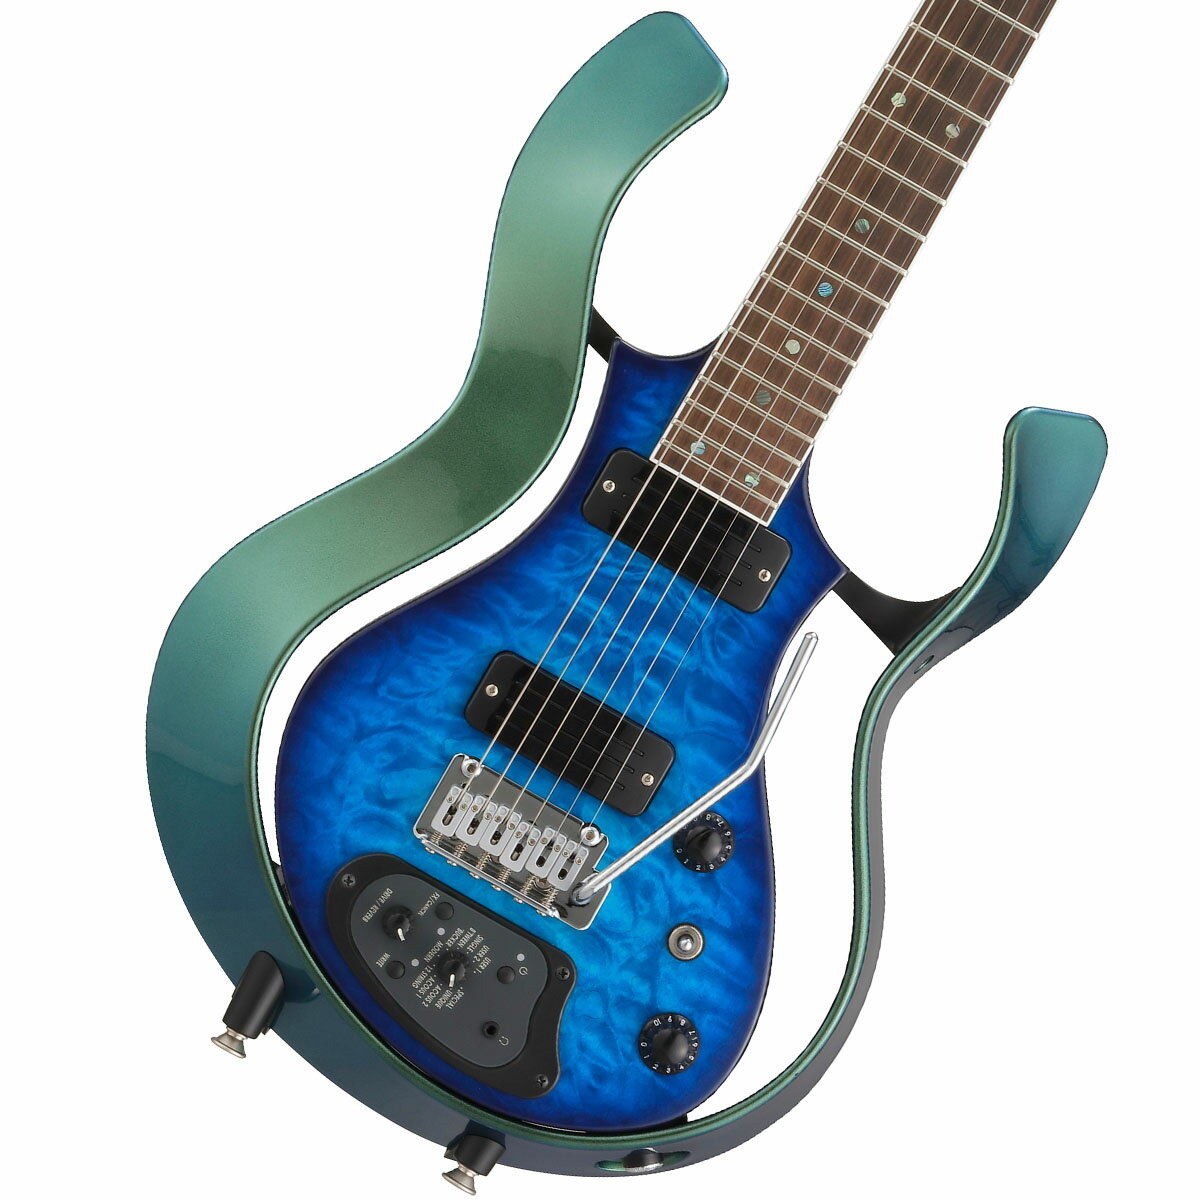 VOX / Modeling Electric Guitar Starstream Type 1-24 Metallic Green Frame with Trans Blue/Qulted Maple Top (VSS-1-24MGTL-Q)